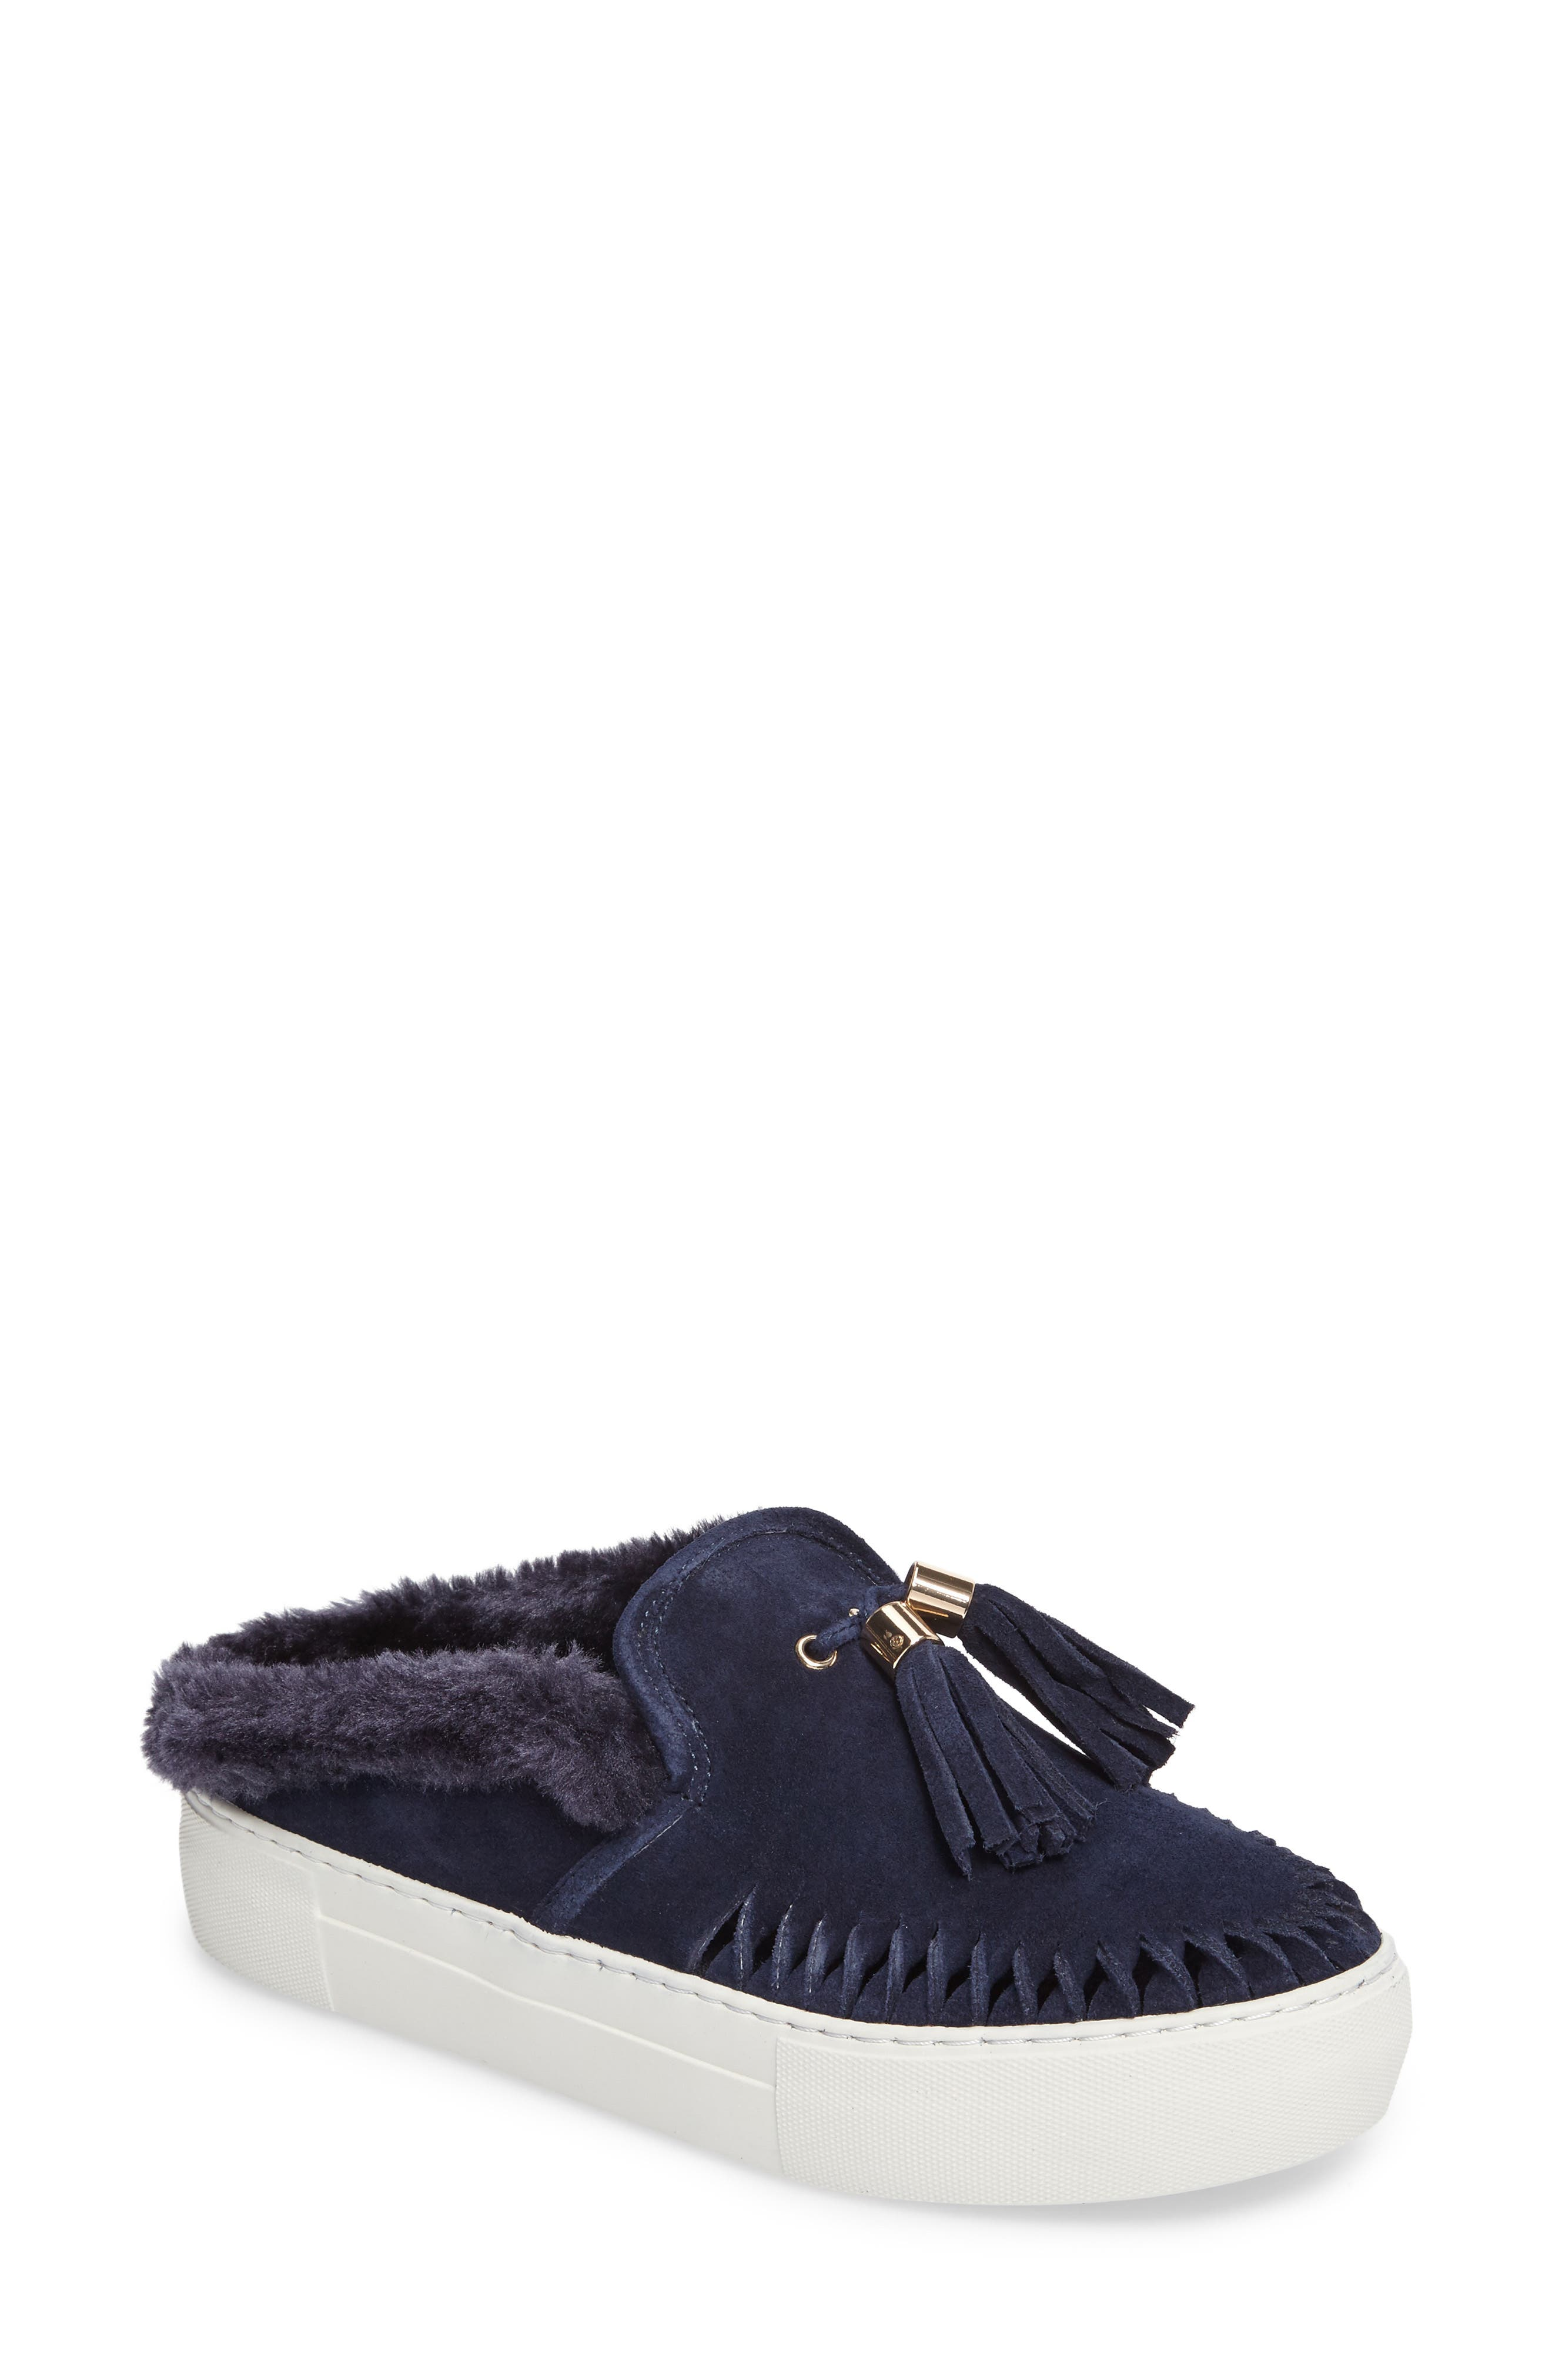 Alternate Image 1 Selected - JSlides Azul Tassel Slip-On Sneaker (Women)